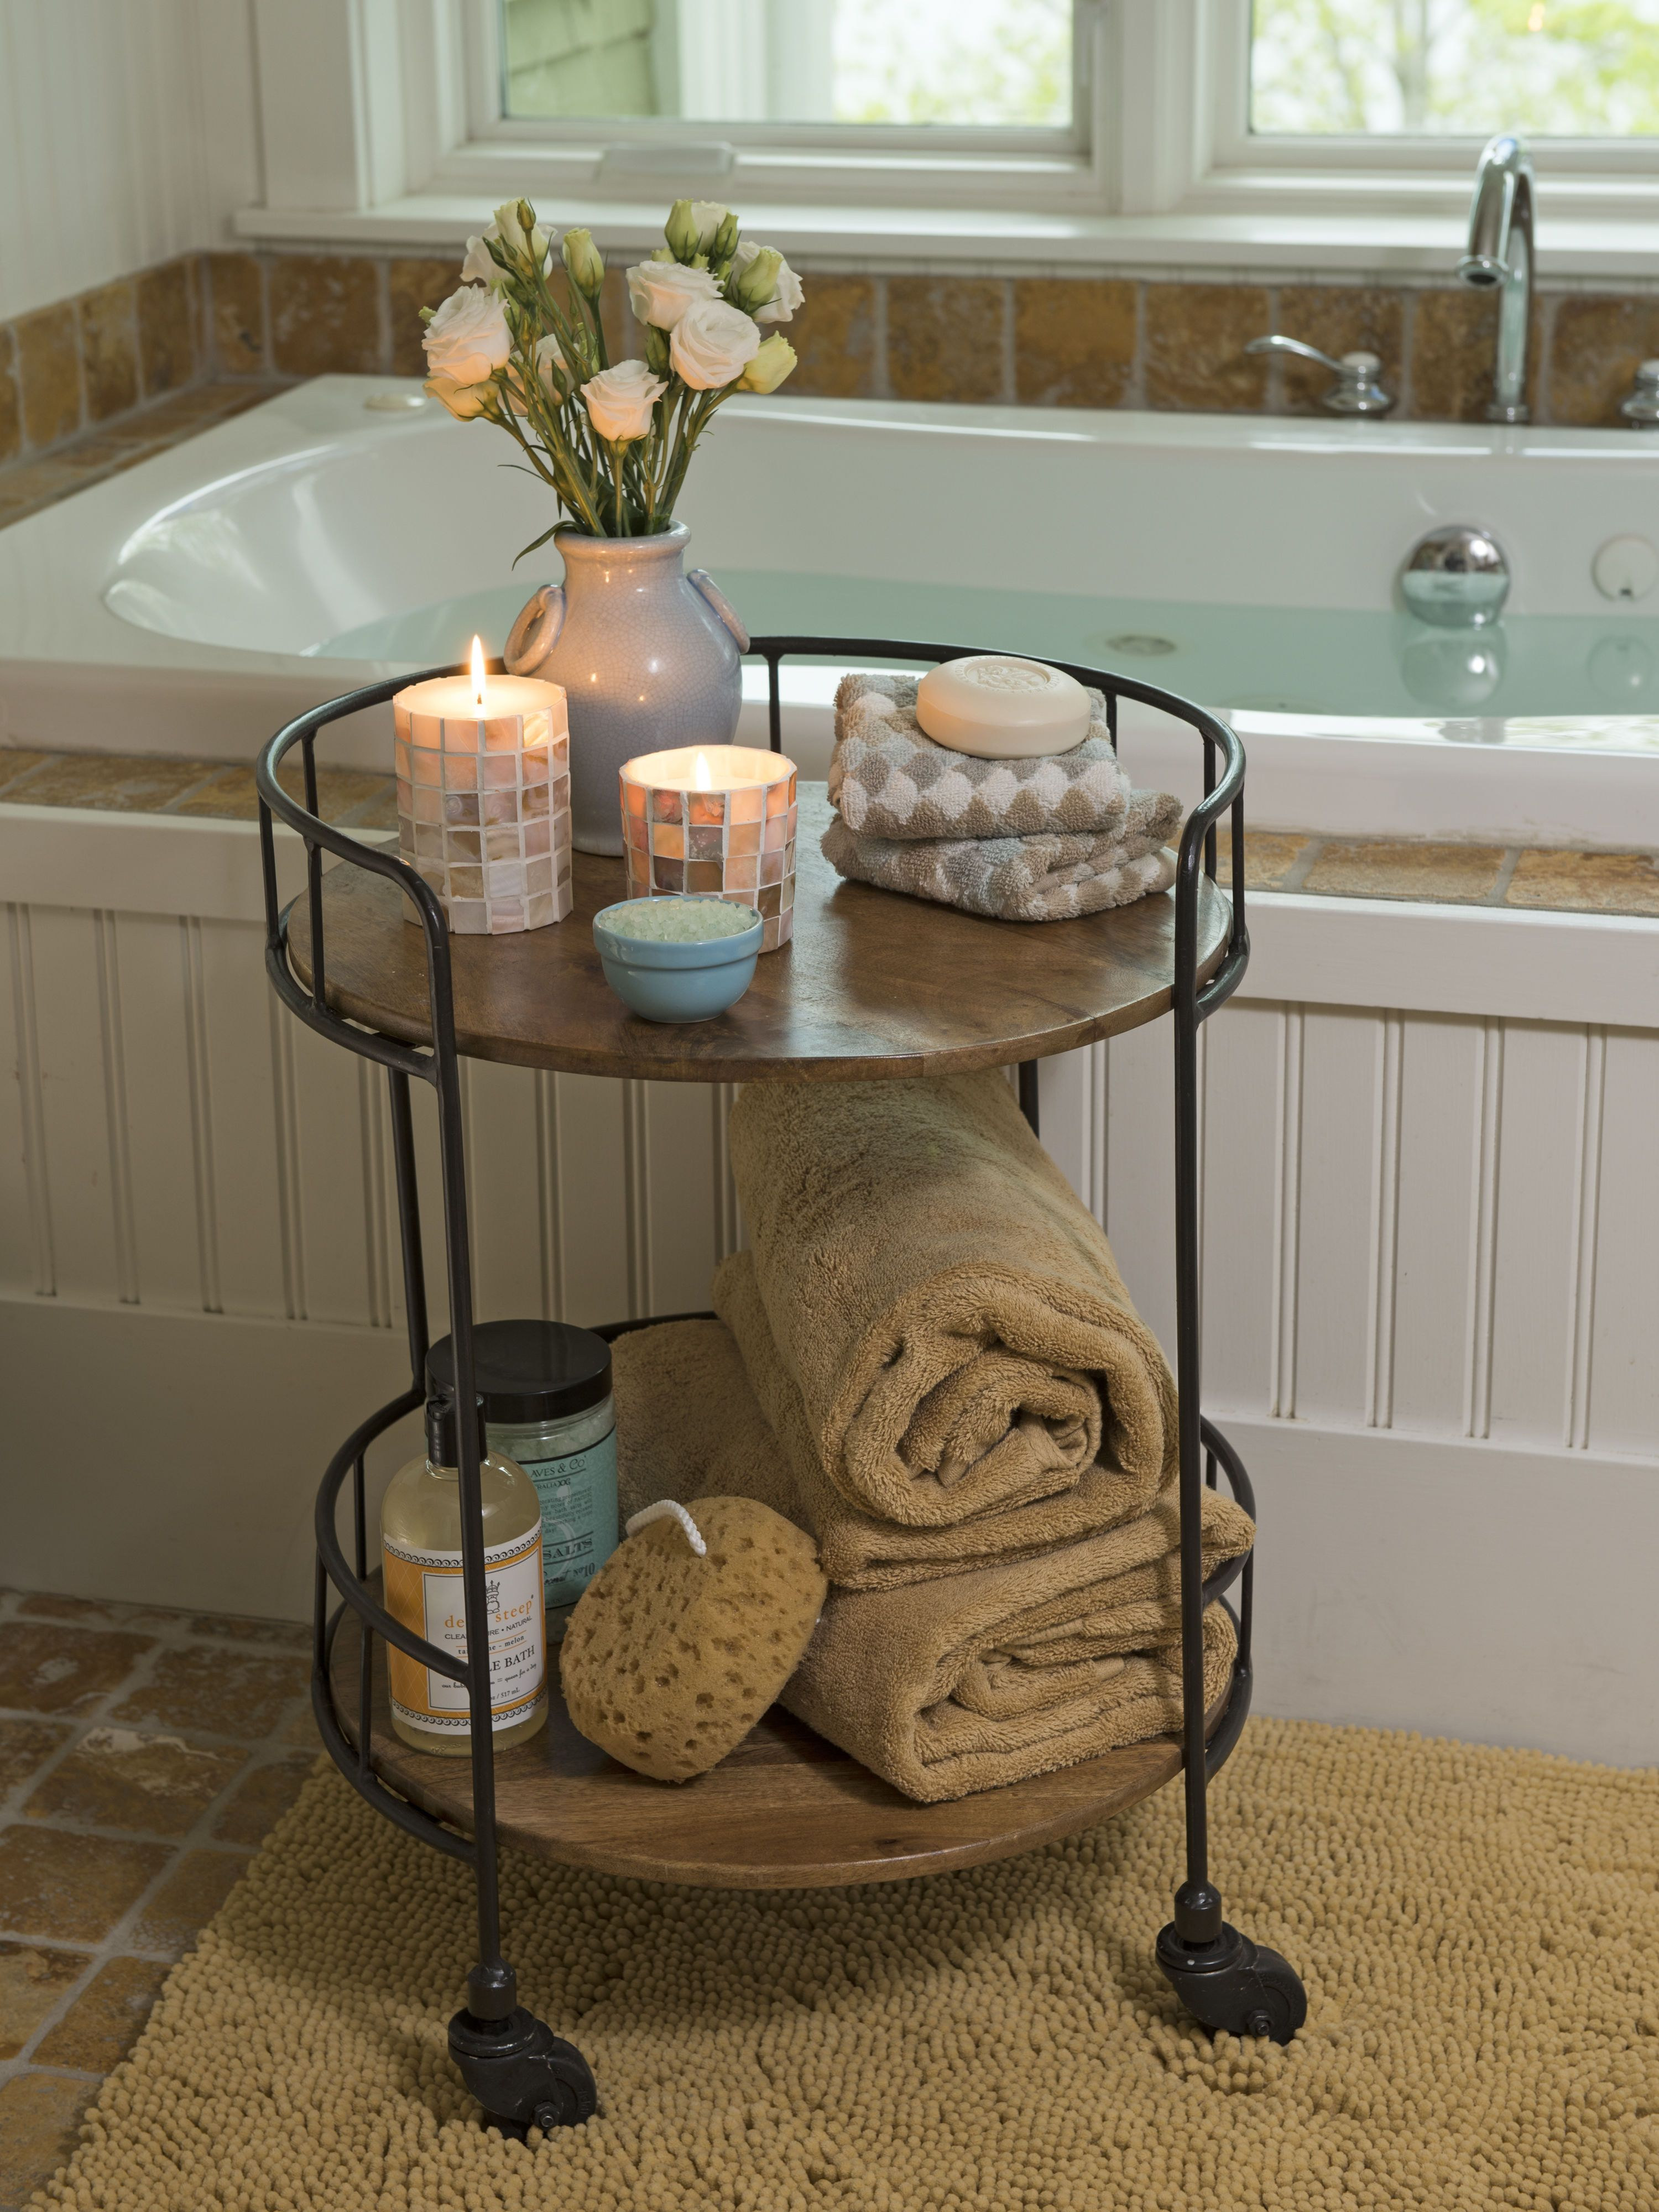 Rustic Side Table Astoria Rolling Accent Table Industrial Vibe I Really Want A Little Side Table For The Bathroom To Store Washcloths And Bubble Bath In